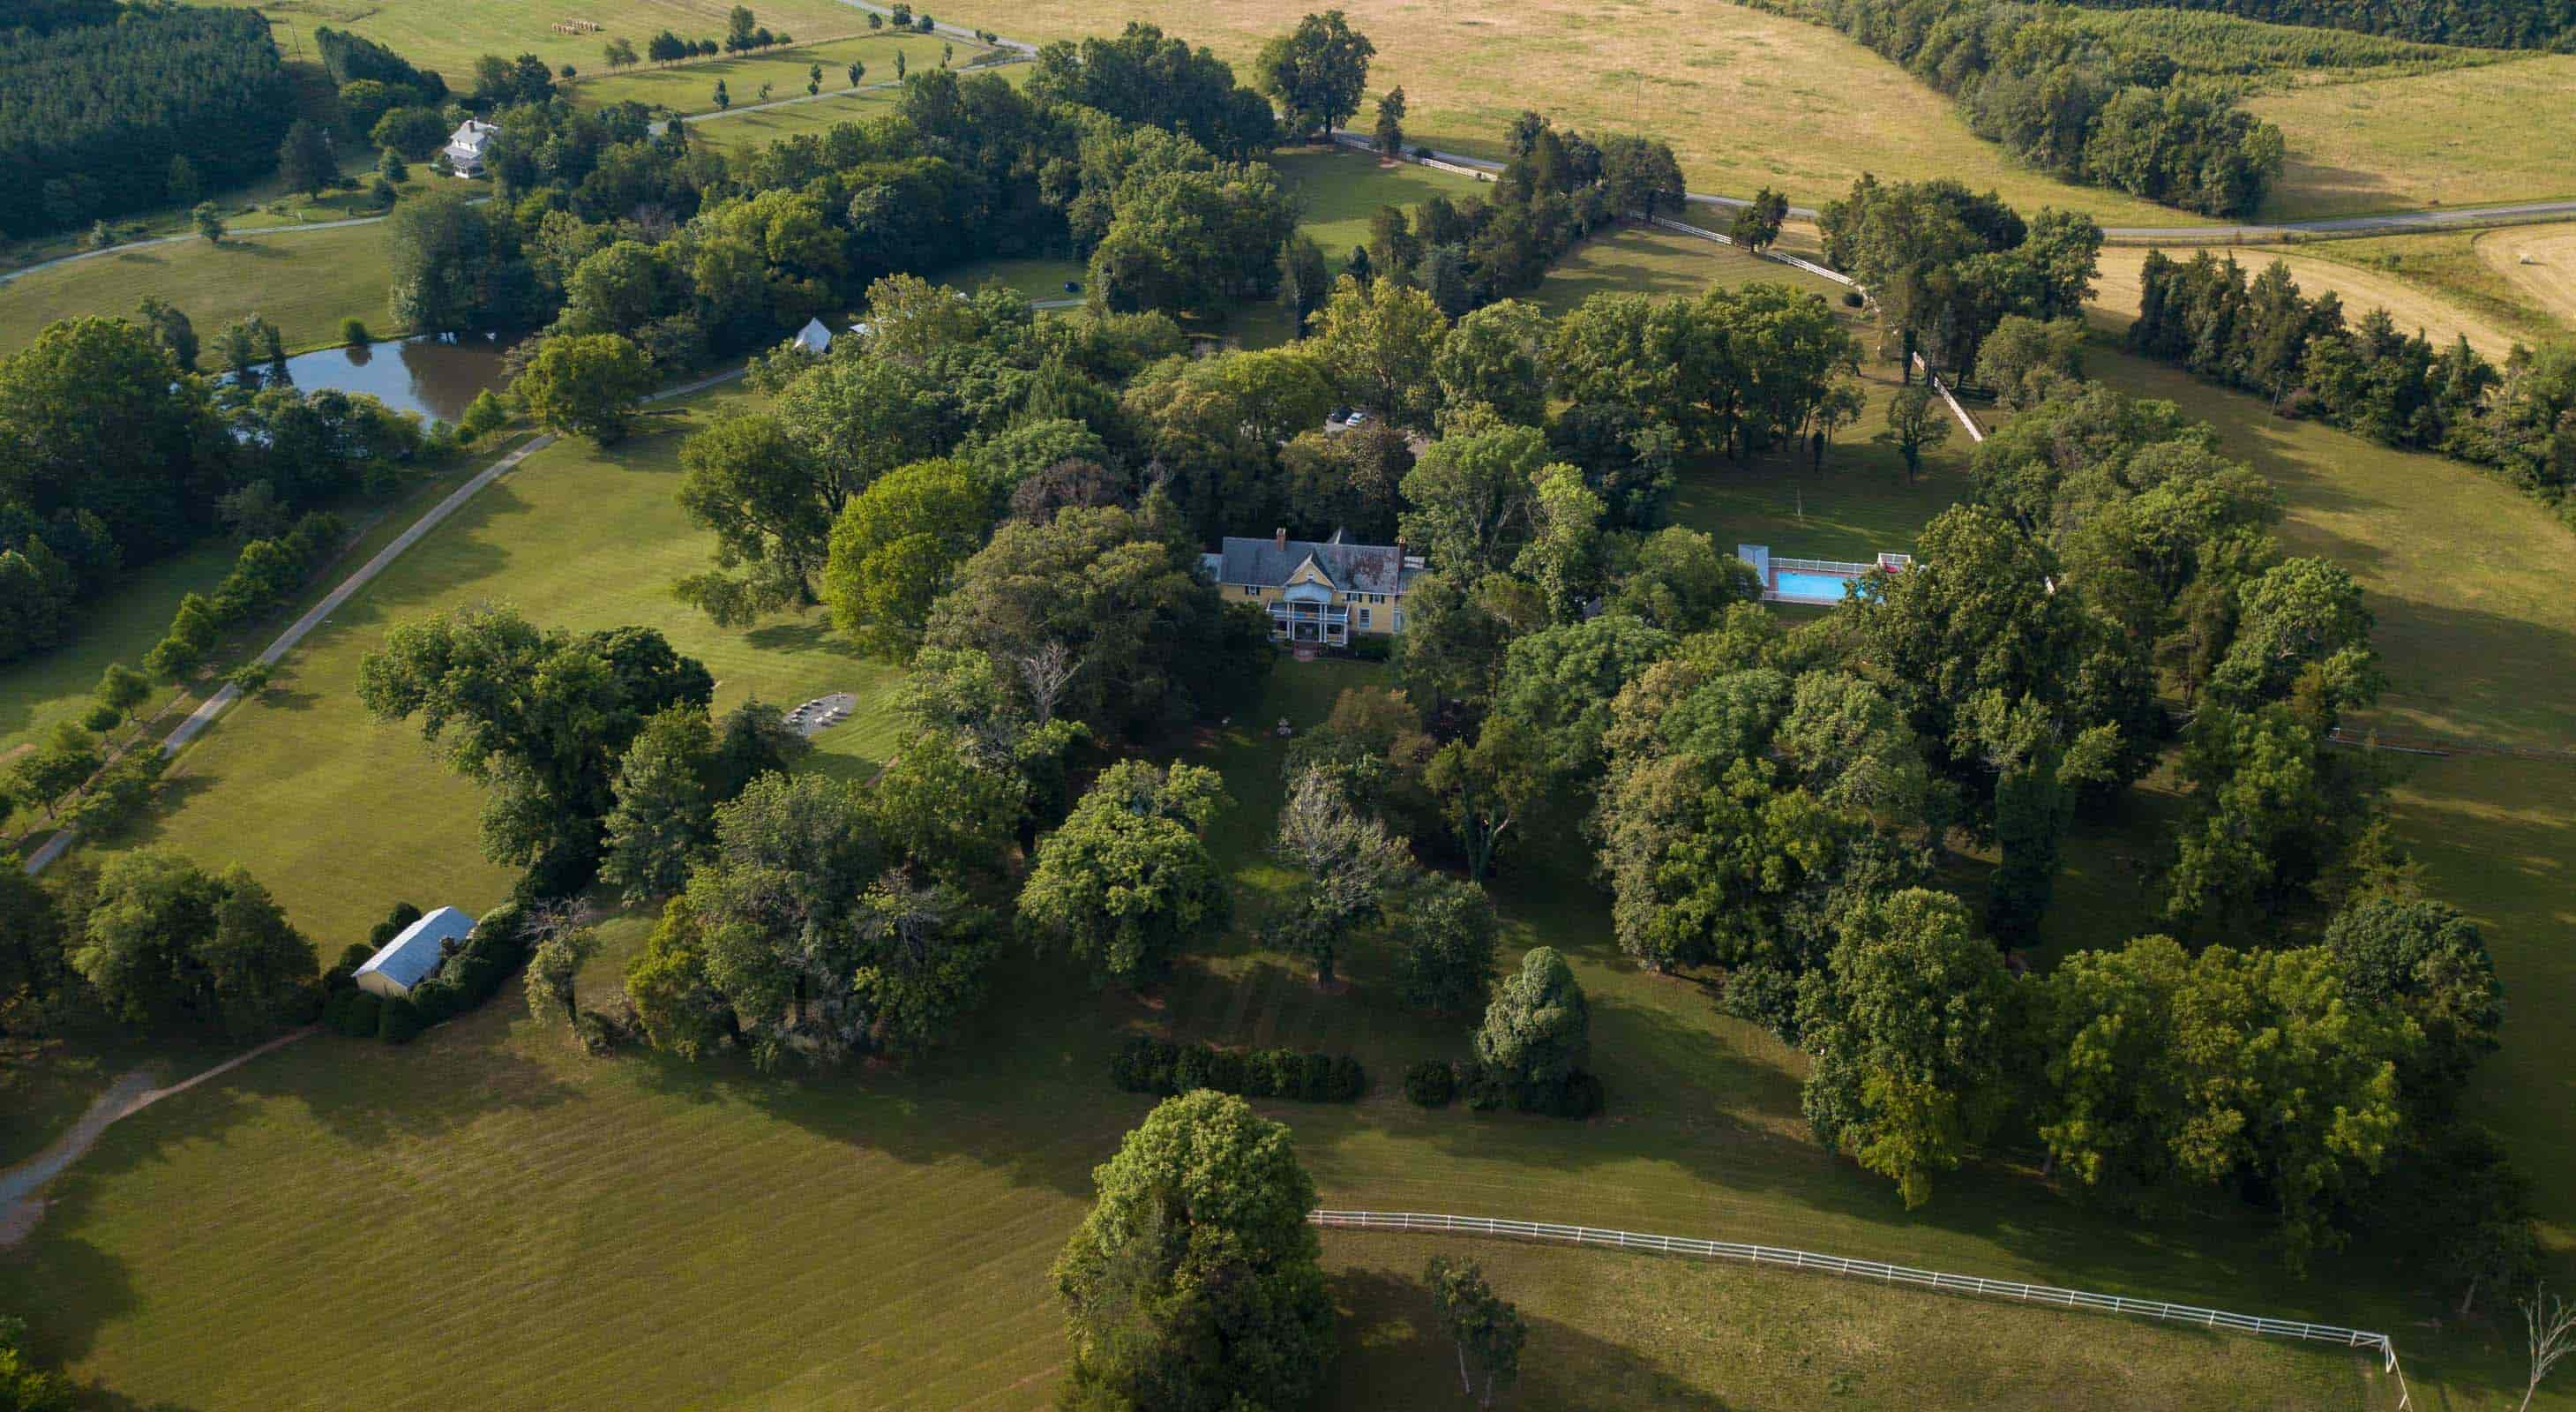 Aerial view of Prospect Hill Inn and Property